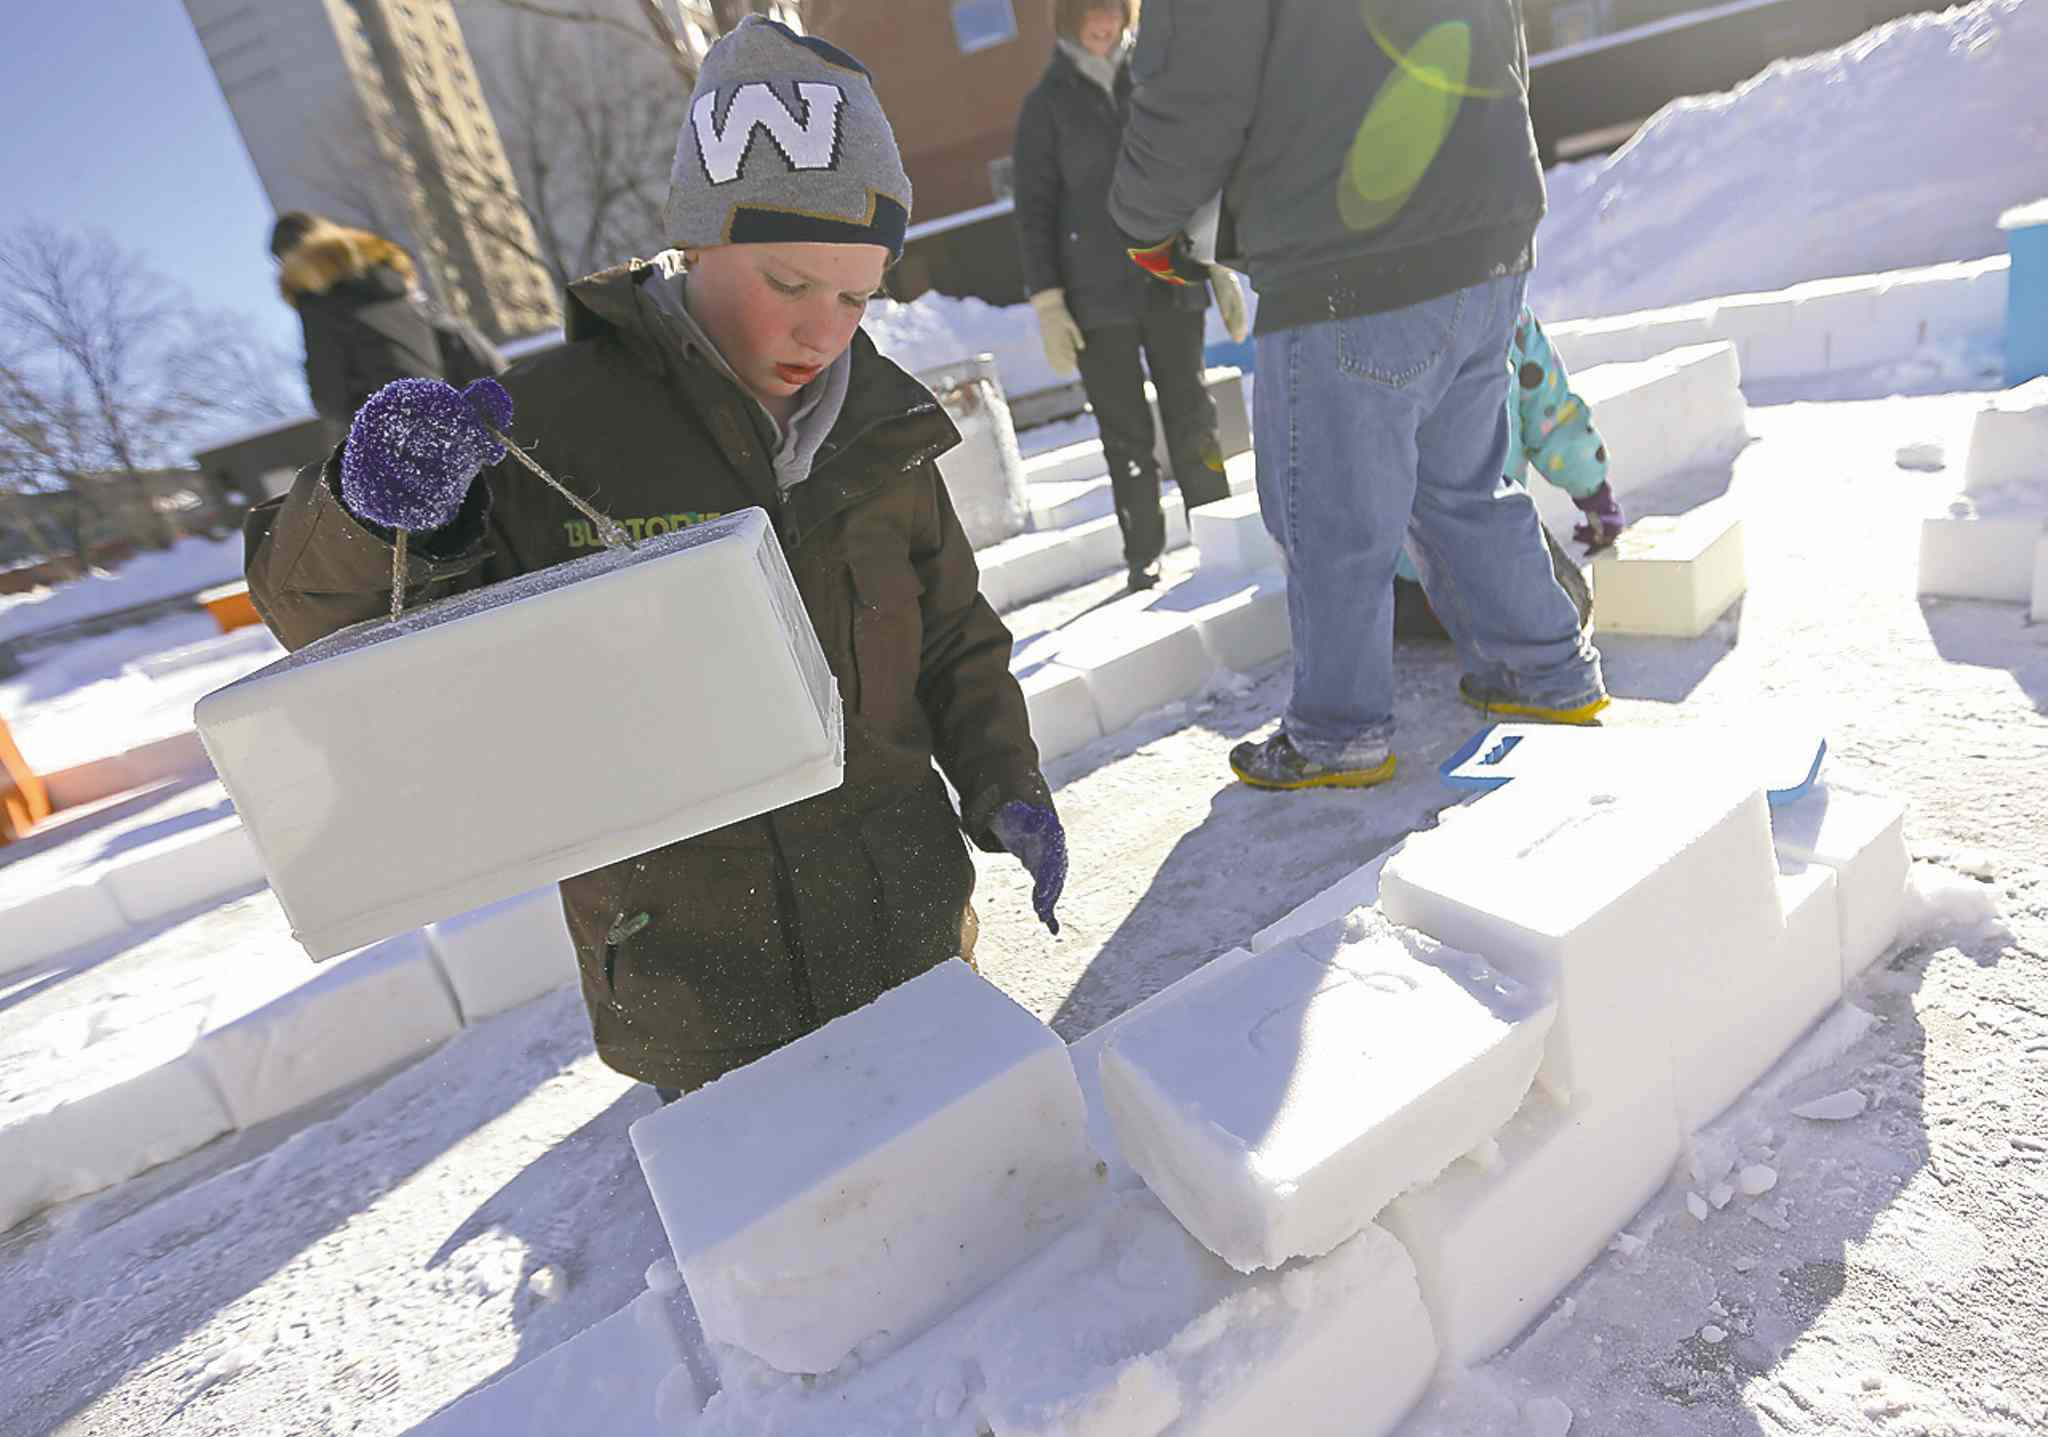 TREVOR HAGAN / WINNIPEG FREE PRESS Lenny Wilson, 8, who recently moved here from Melbourne, Australia, works on a snow block at the snow maze Saturday.